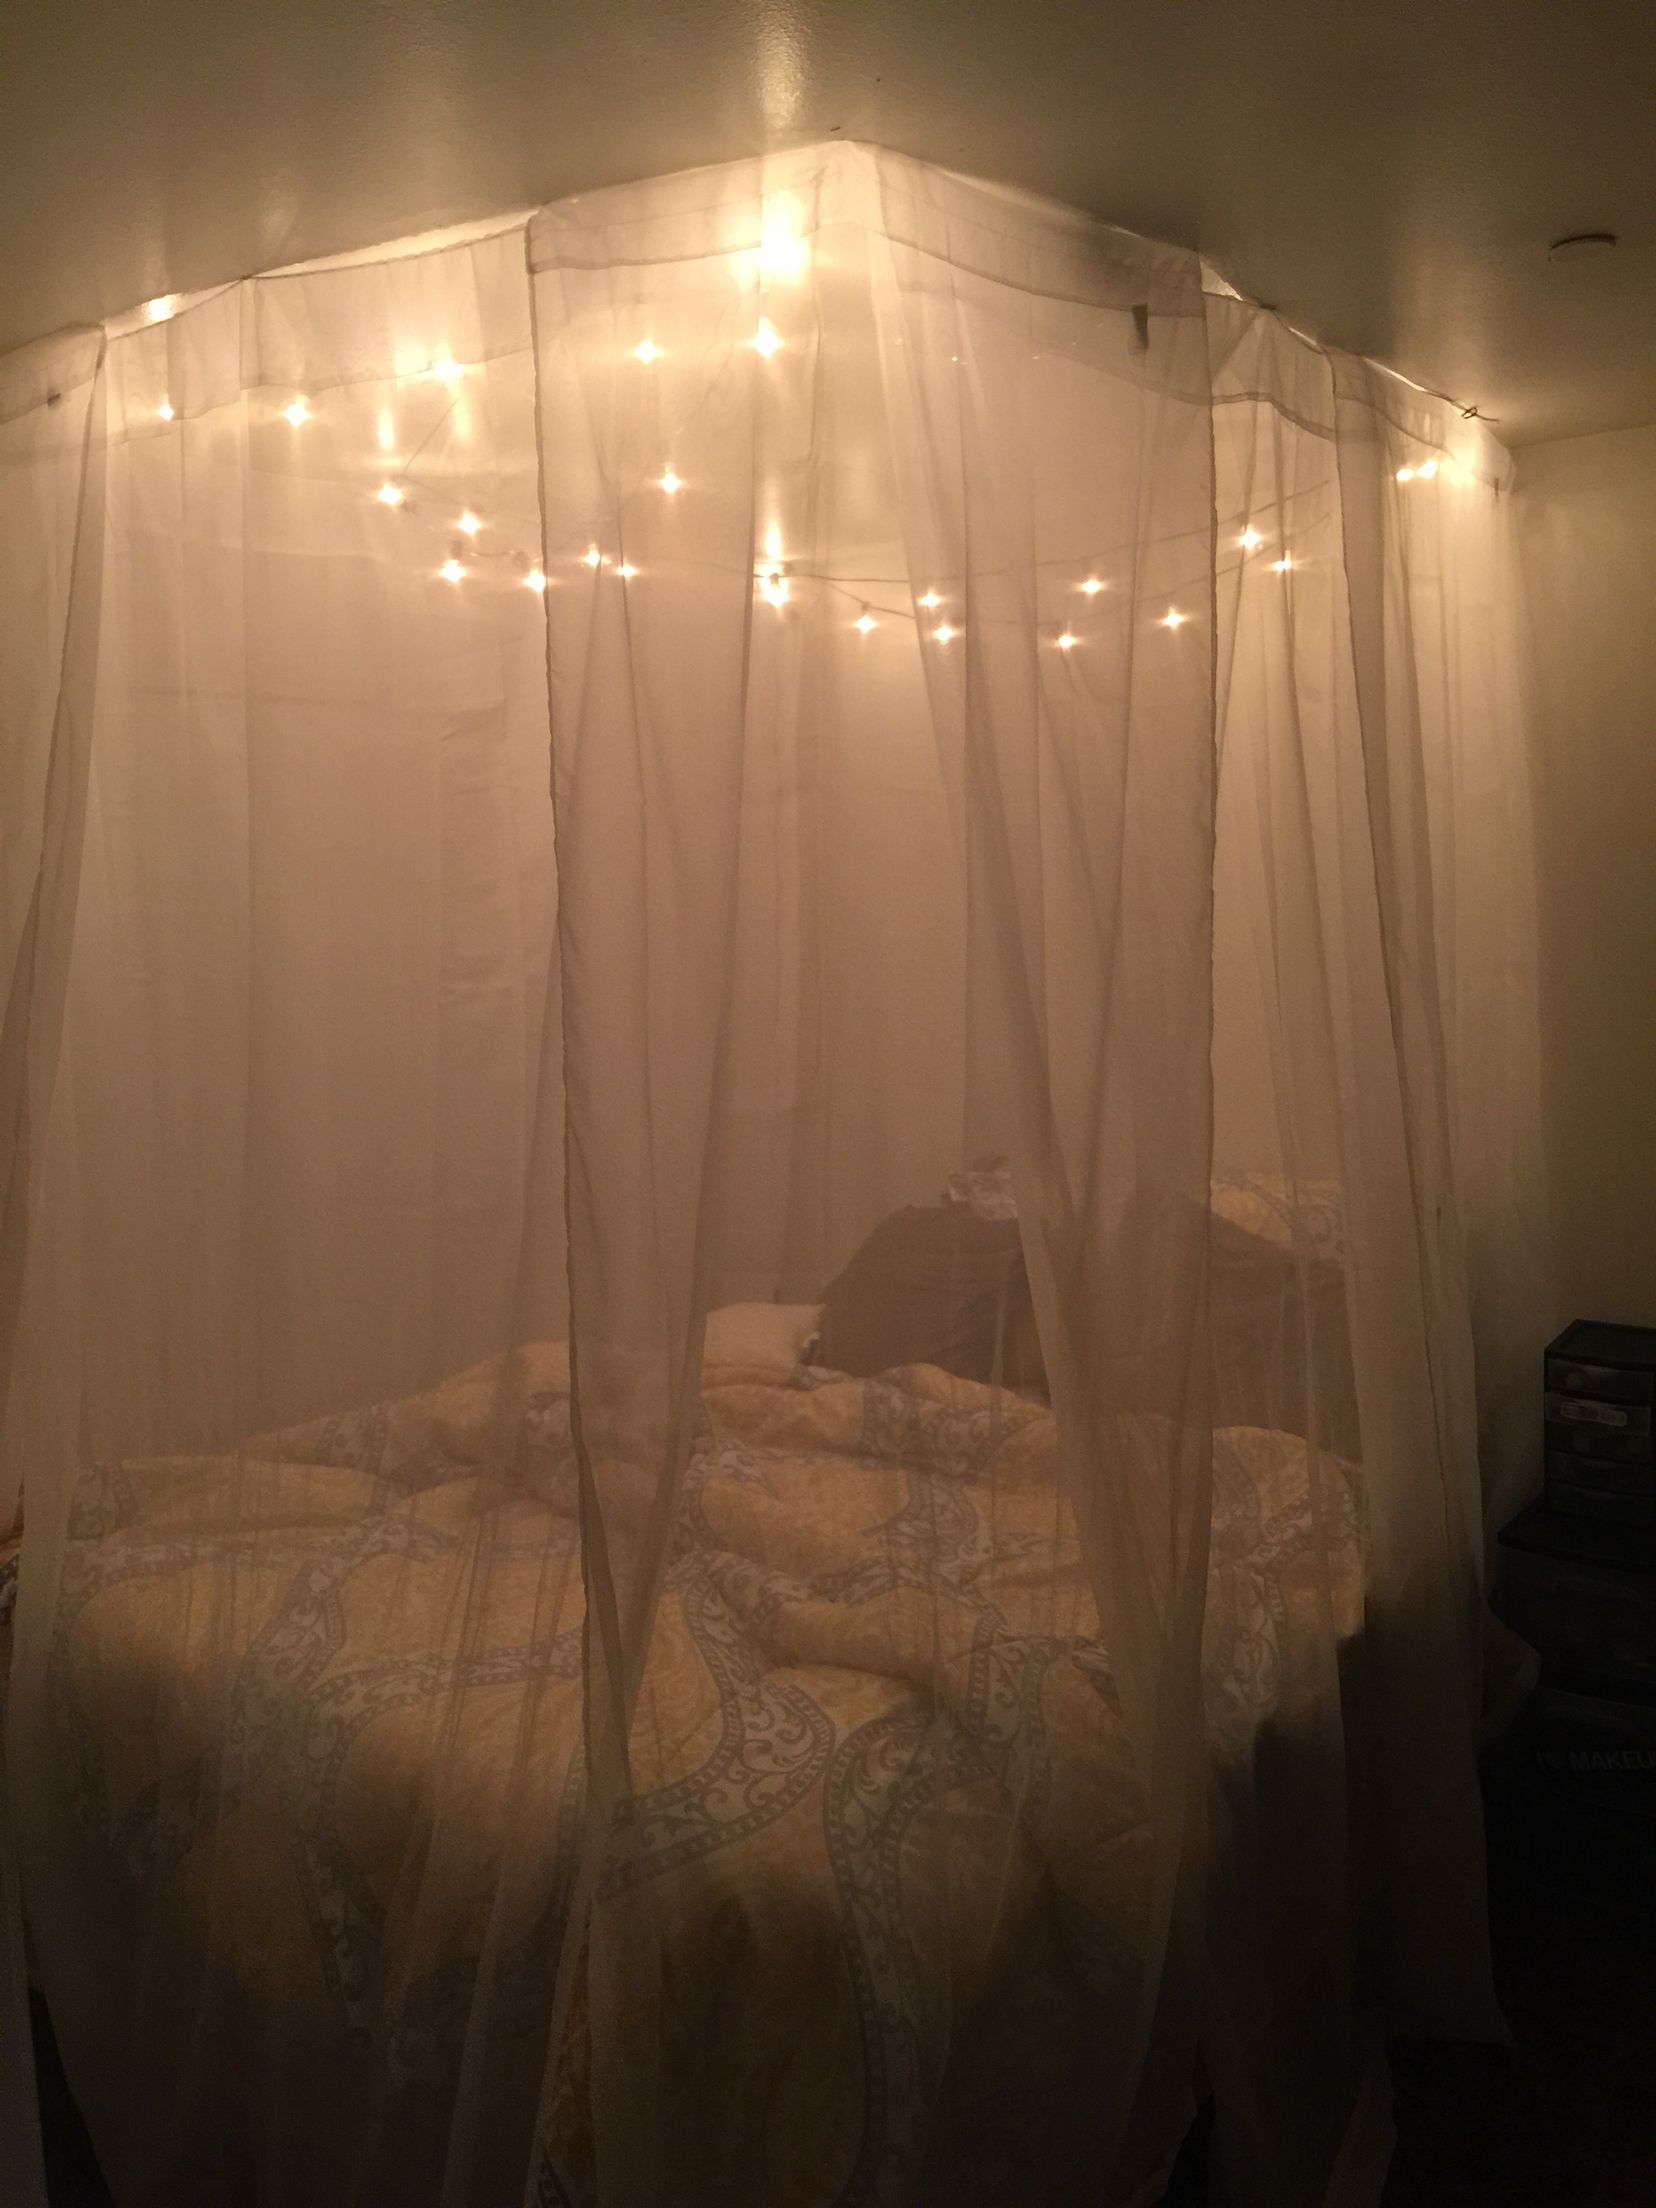 Tulle Canopy Diy My Recreation Of A Homemade Canopy With Lights Livin The Suite